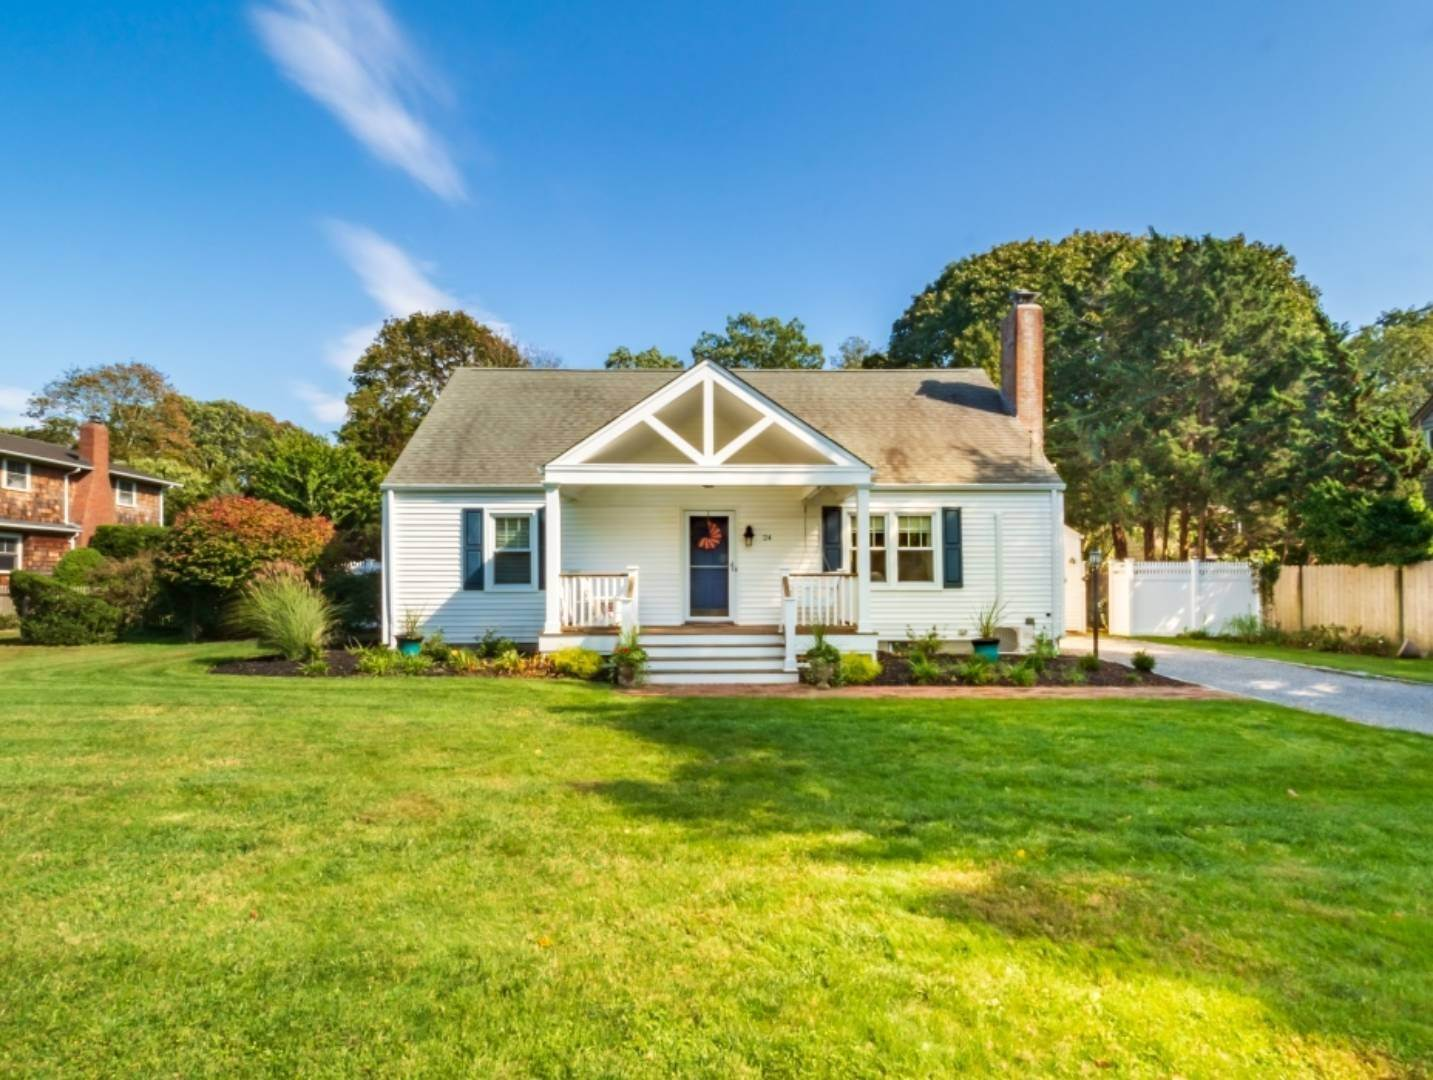 Single Family Home at Steps To All In Westhampton Beach Westhampton Beach Village, NY 11978